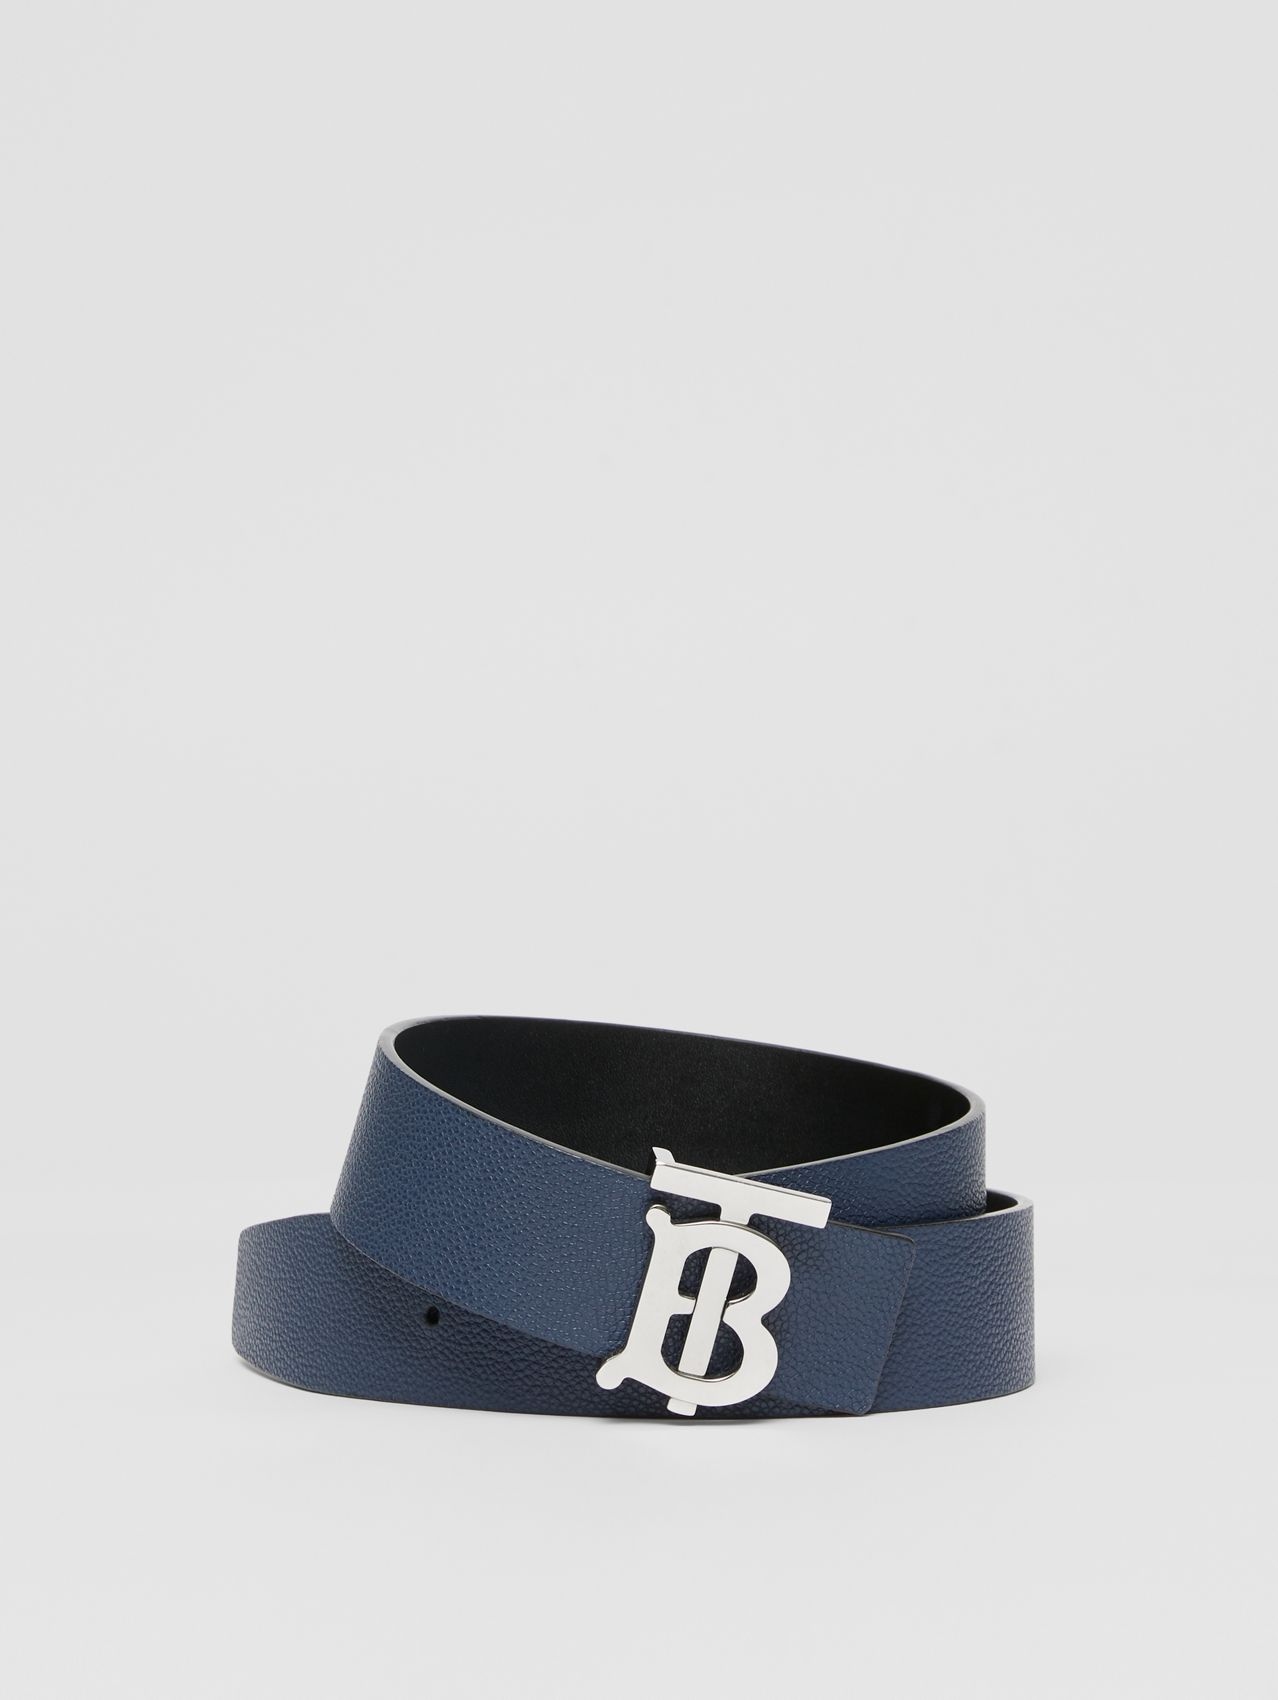 Reversible Monogram Motif Leather Belt in Navy/black